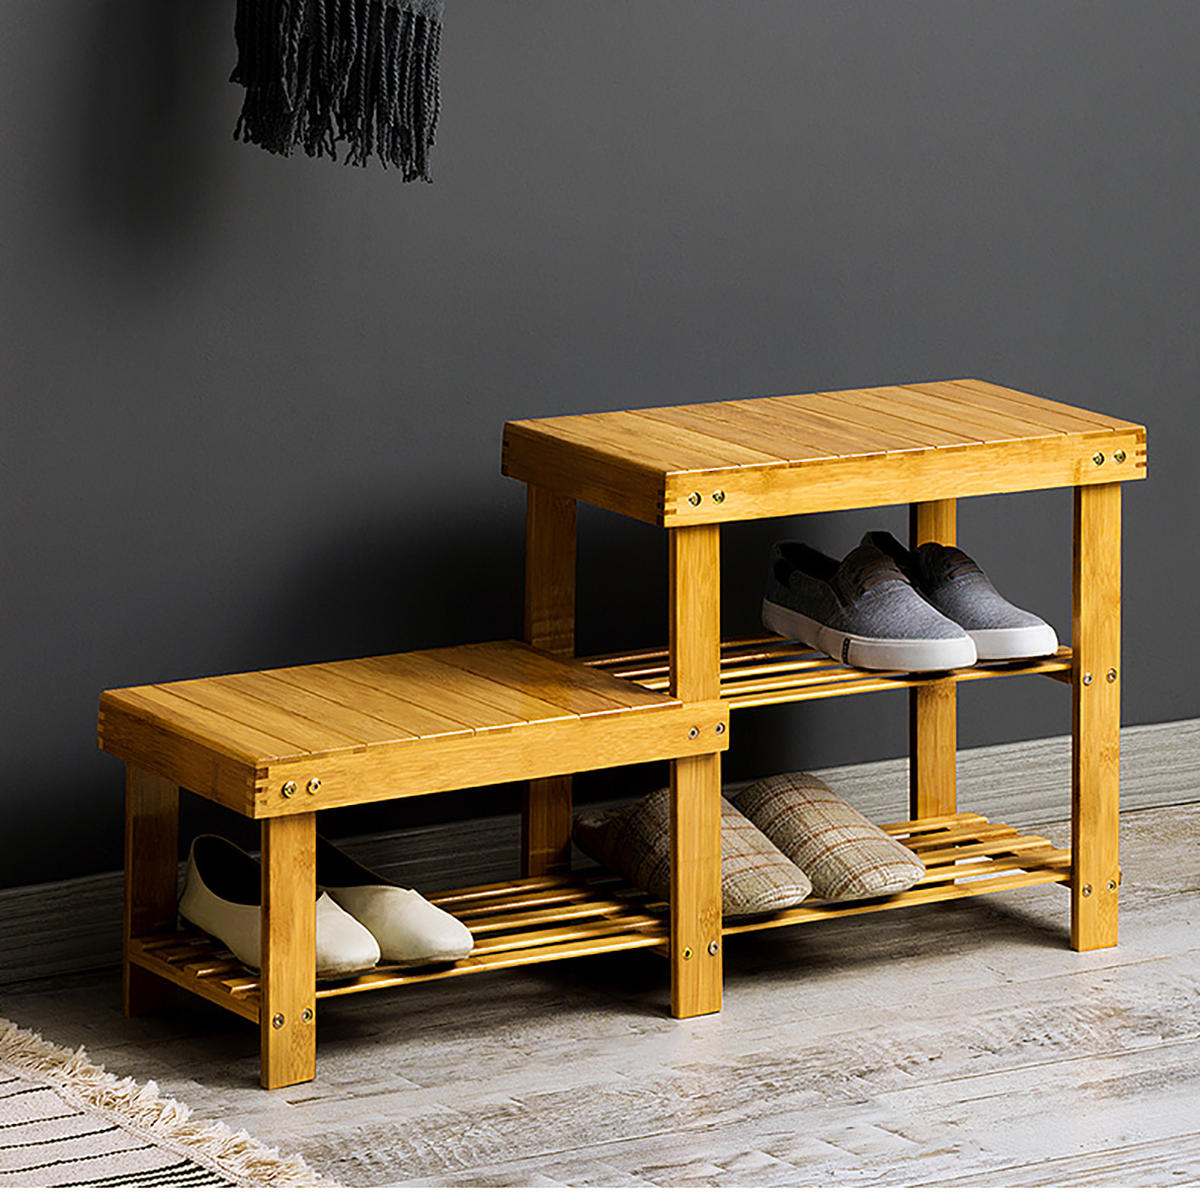 Bamboo Shoe Racks Bench Storage Seat Organizer Shelf Footstool Entryway Hallway Home Sale Banggood Com Sold Out Arrival Notice